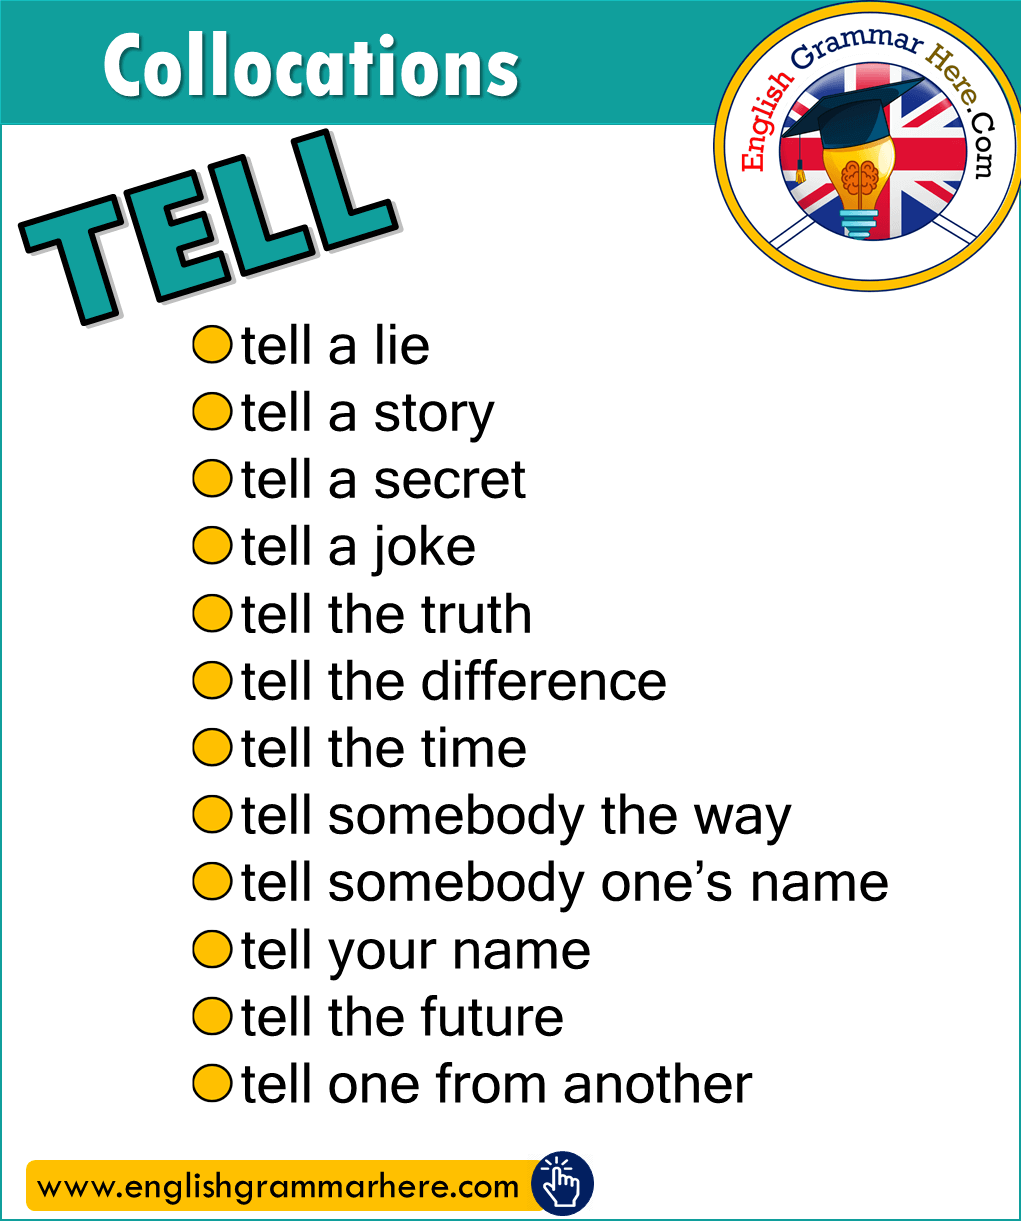 Collocations with TELL in English